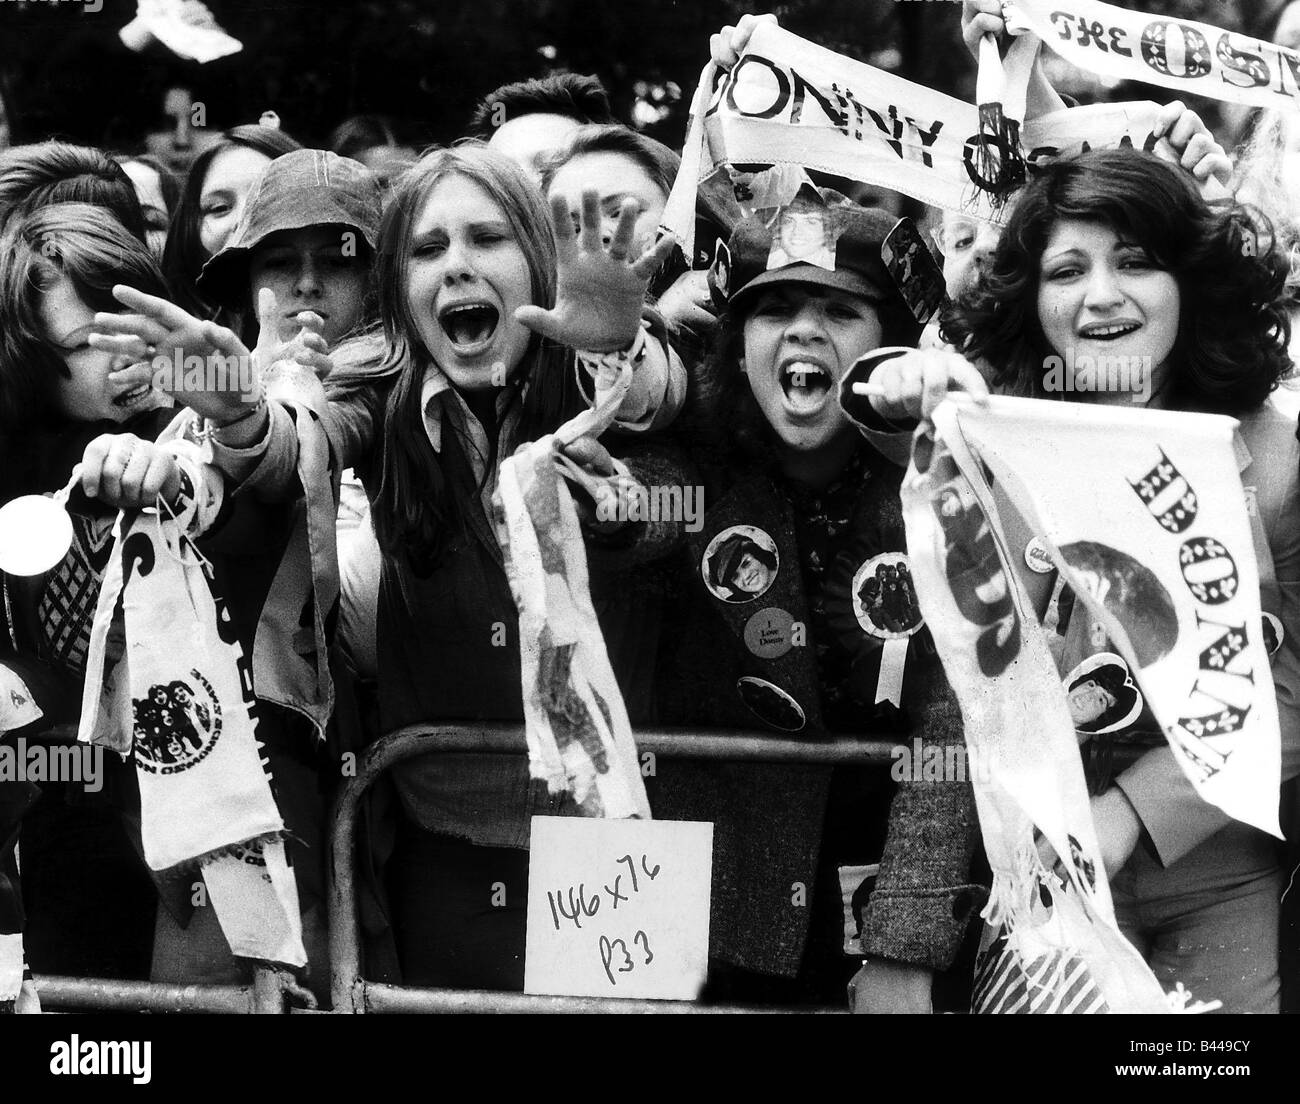 Fans of the Pop Group at The Osmonds Pop Concert May 1975 - Stock Image